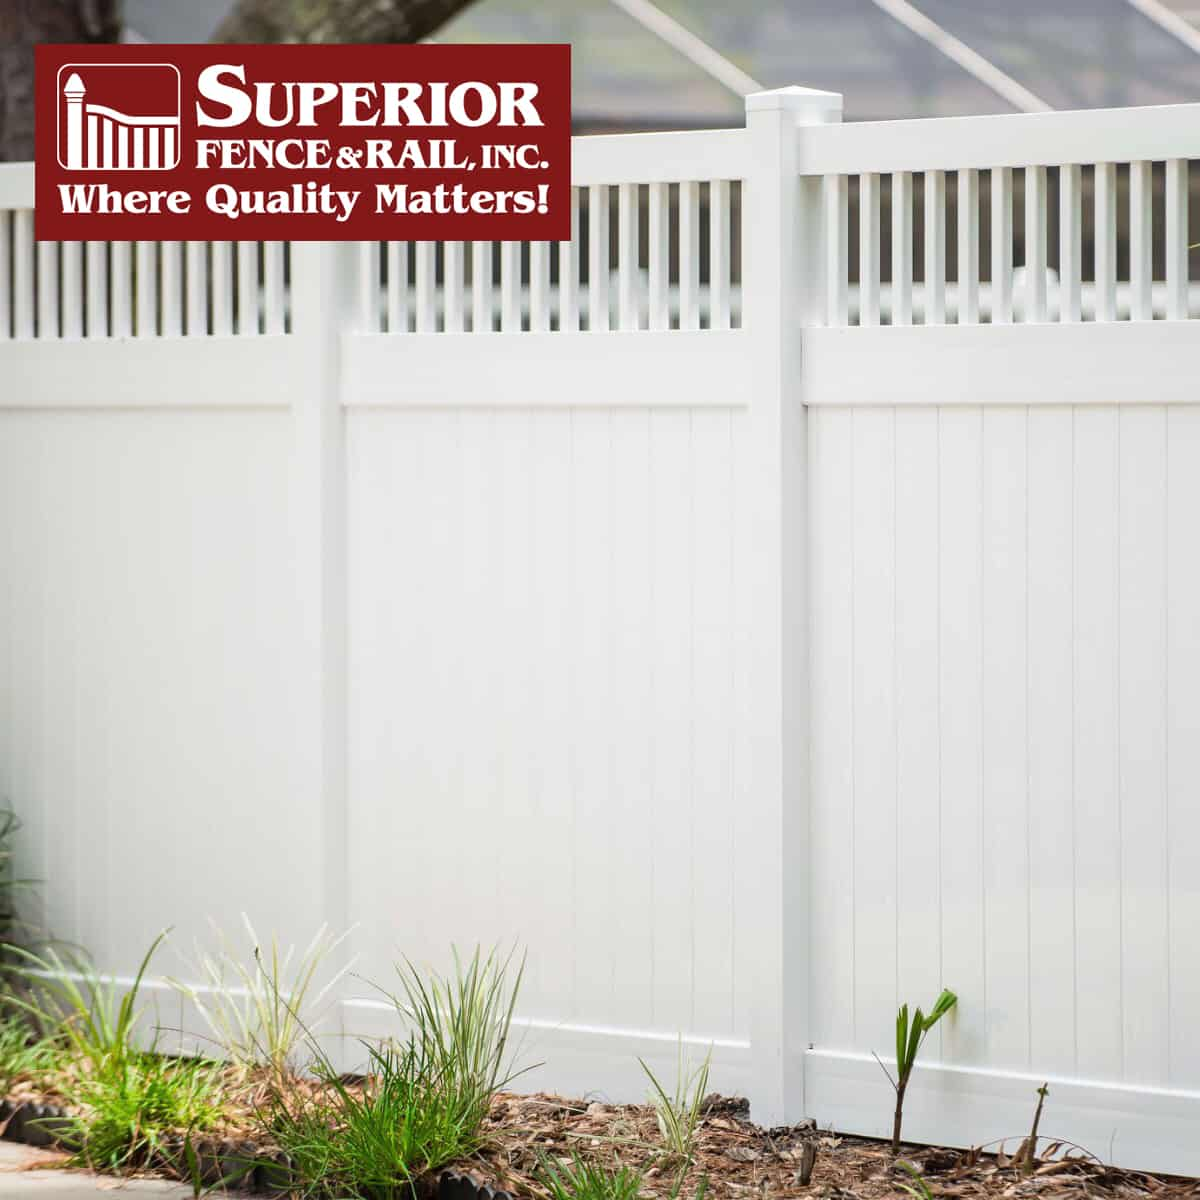 Indian Trail fence company contractor